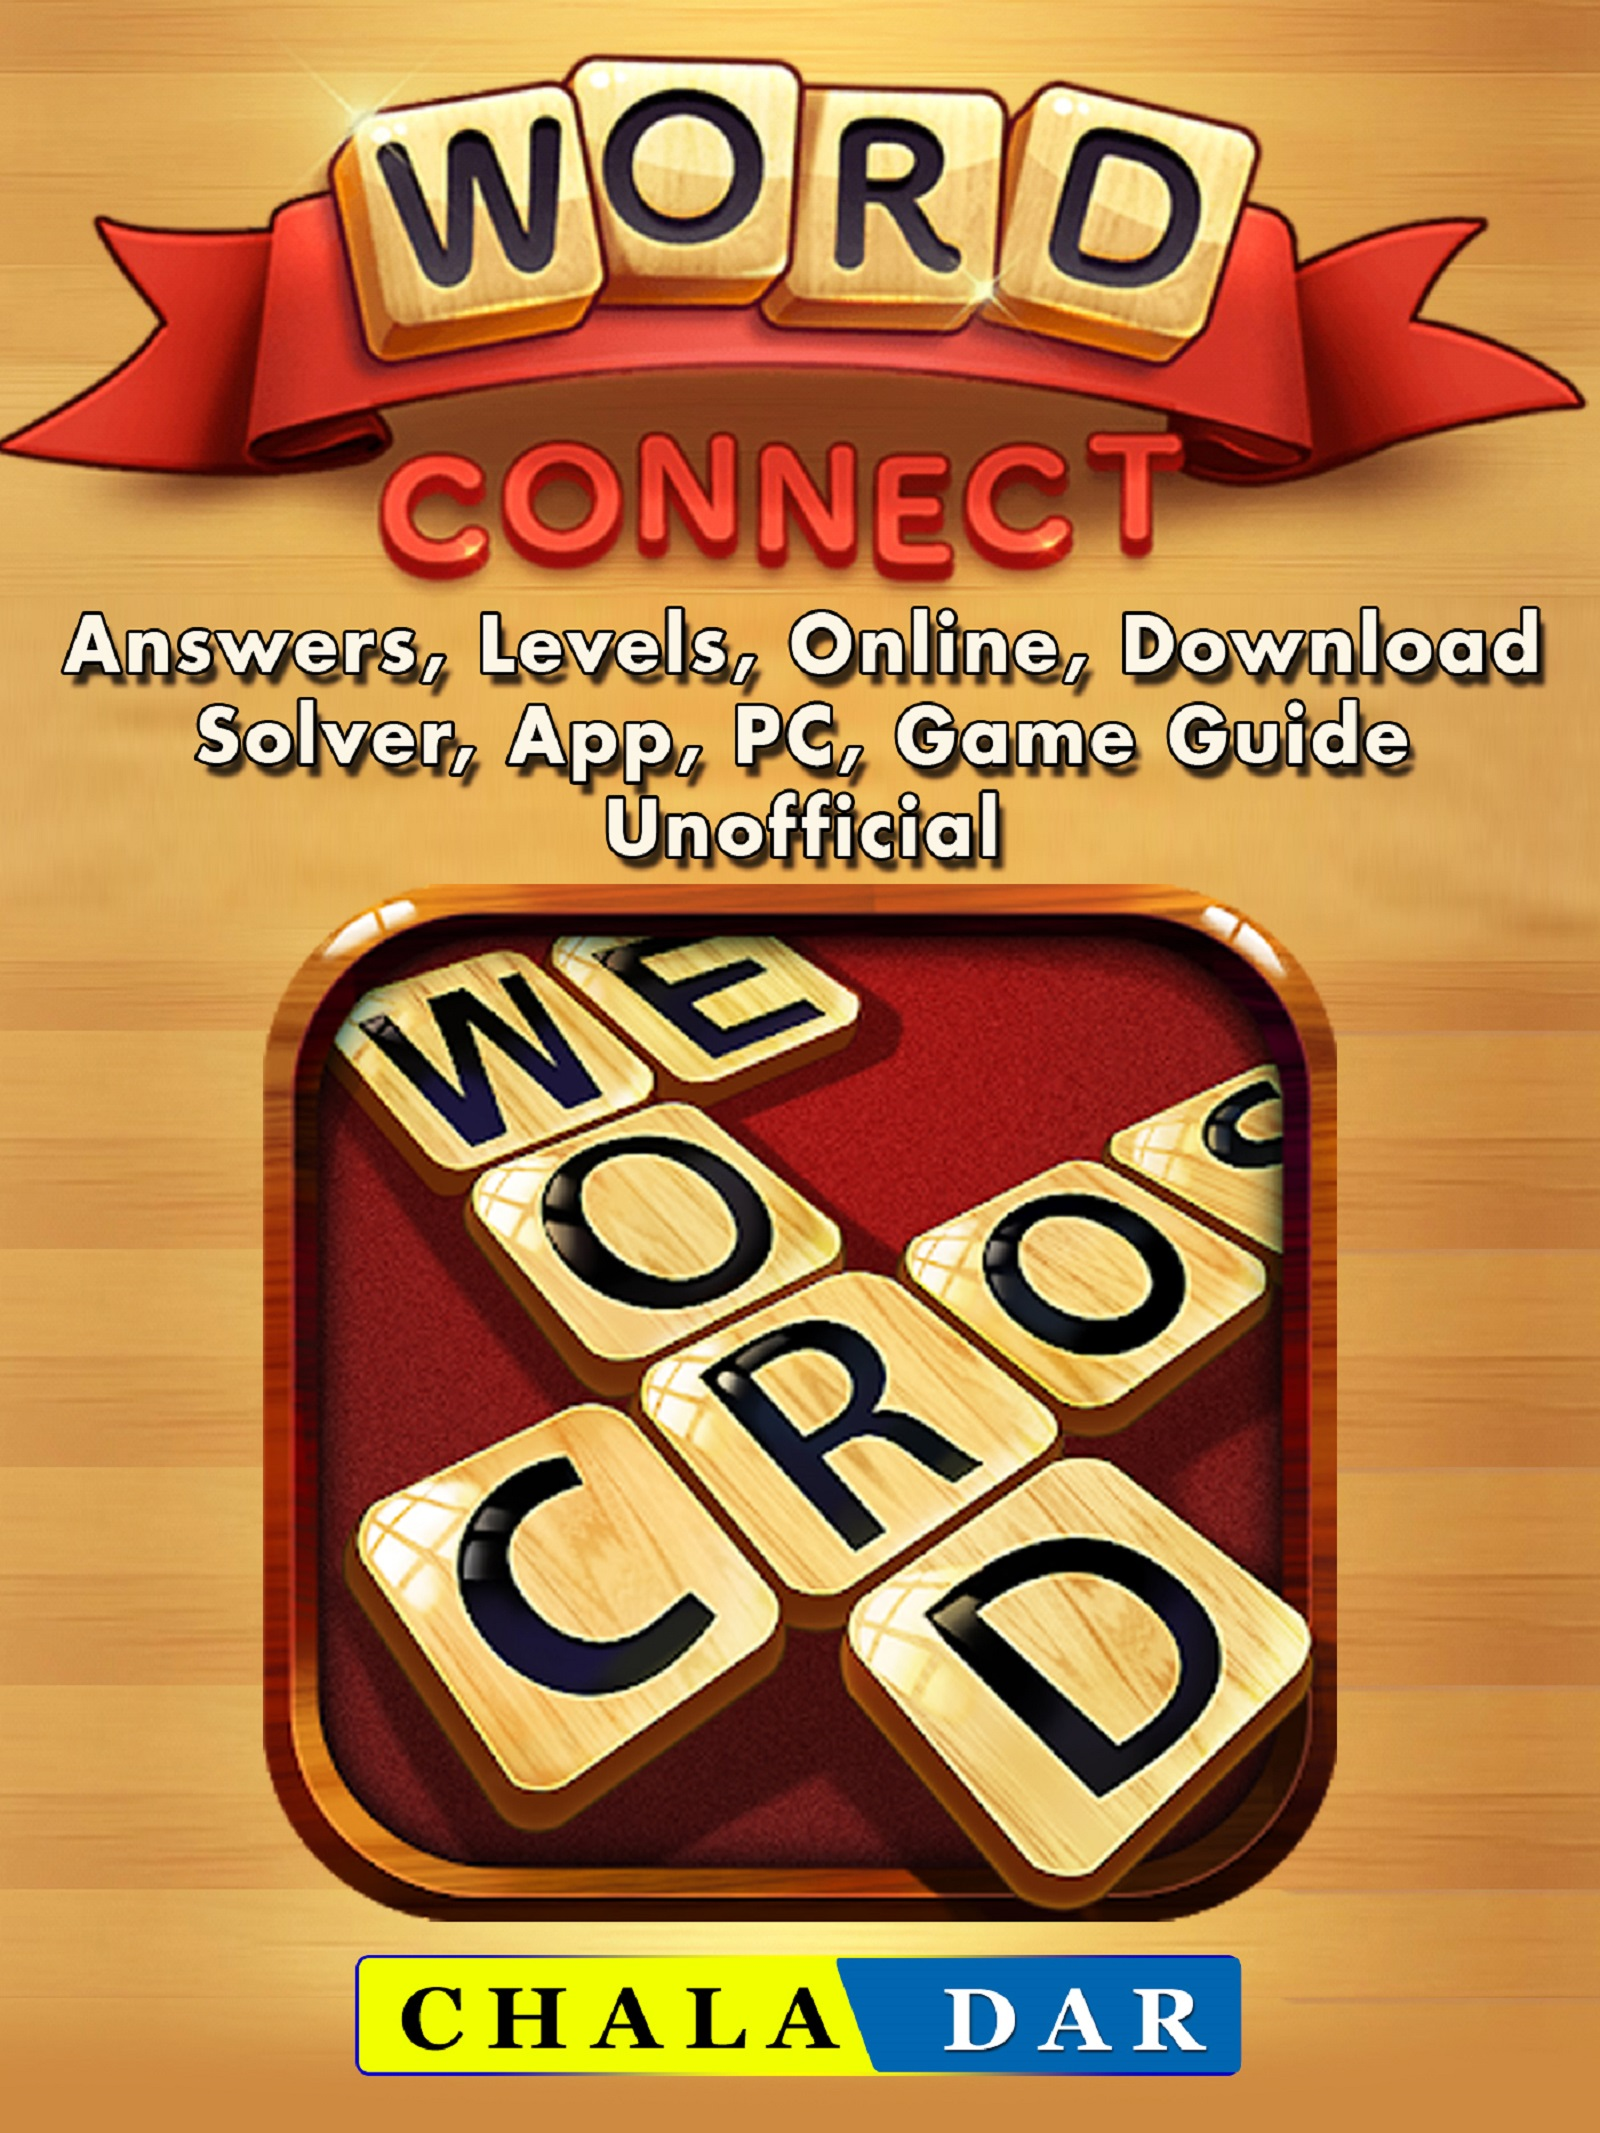 Word Connect, Answers, Levels, Online, Download, Solver, App, PC, Game Guide Unofficial